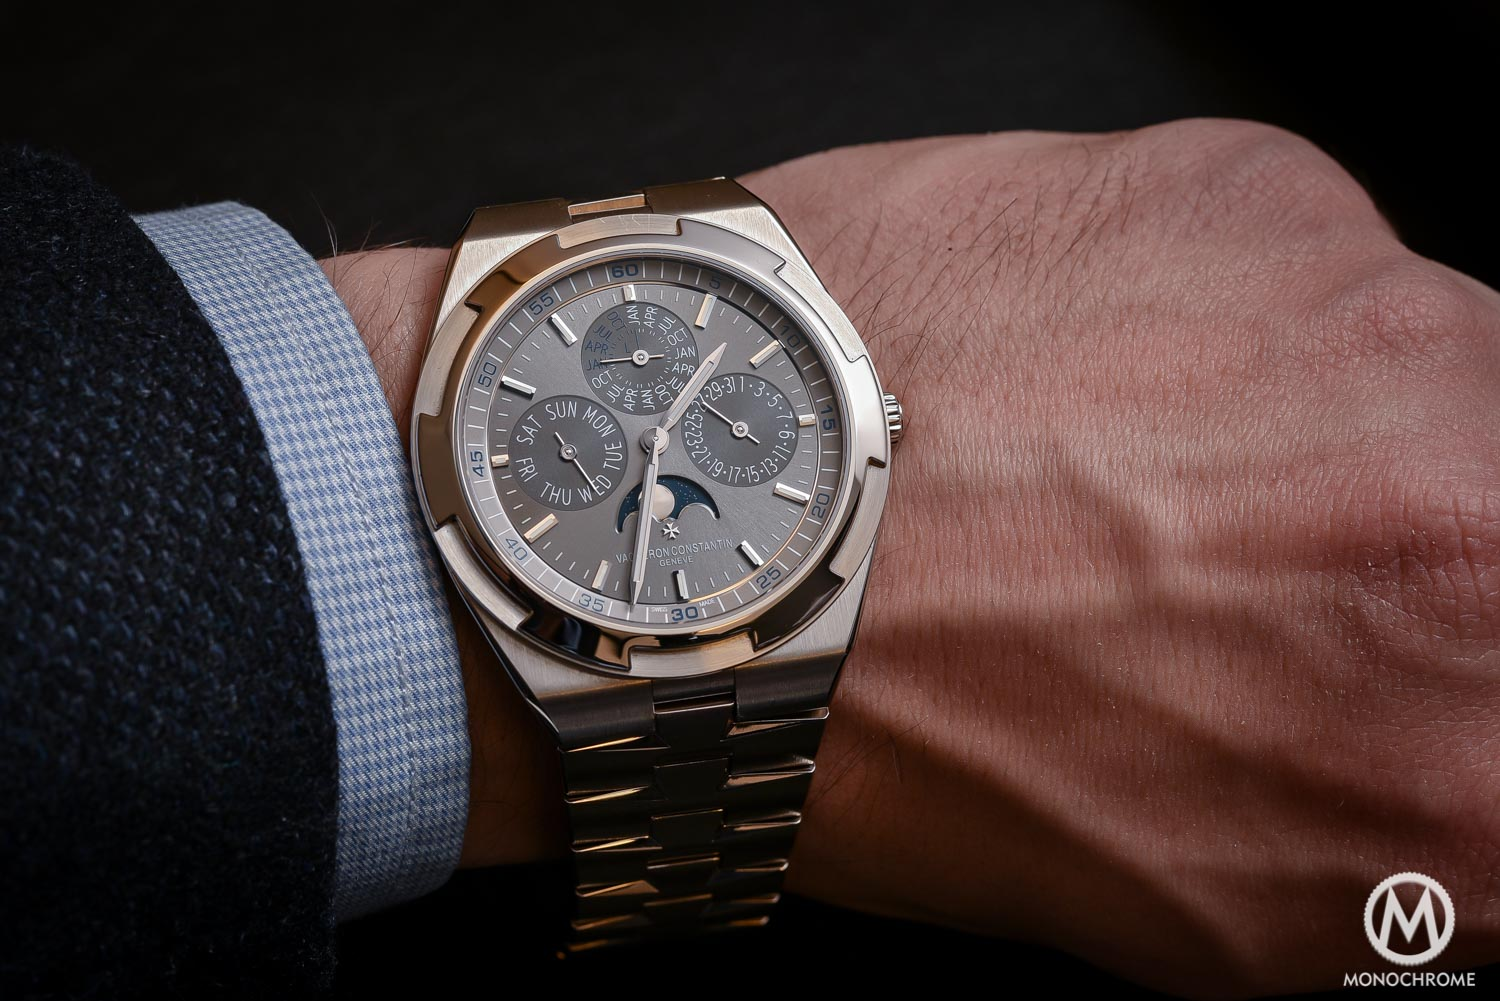 Hands-on Review – Vacheron Constantin Overseas Ultra-Thin Perpetual Calendar (Live pics & price) – and why a QP is relevant in such a sports-watch